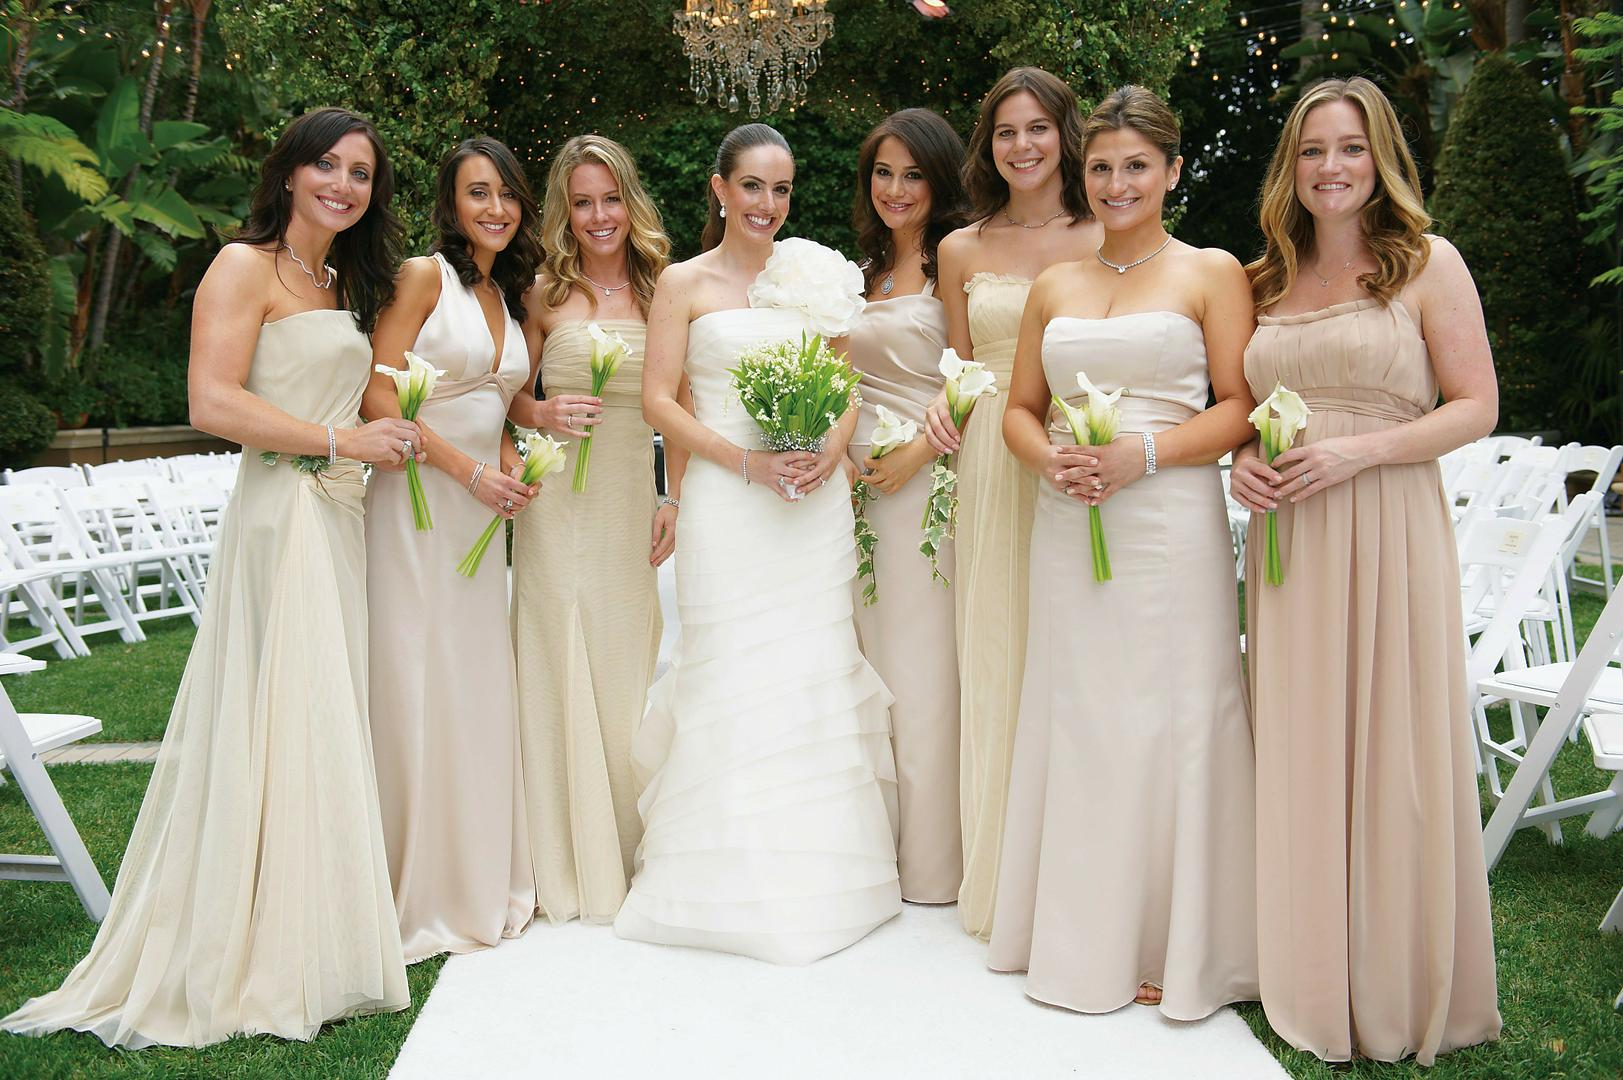 Mismatched bridesmaid dresses mismatched bridesmaid gowns bridesmaids dont have to wear matching dresses to look beautiful and cohesive on your wedding day ombrellifo Gallery